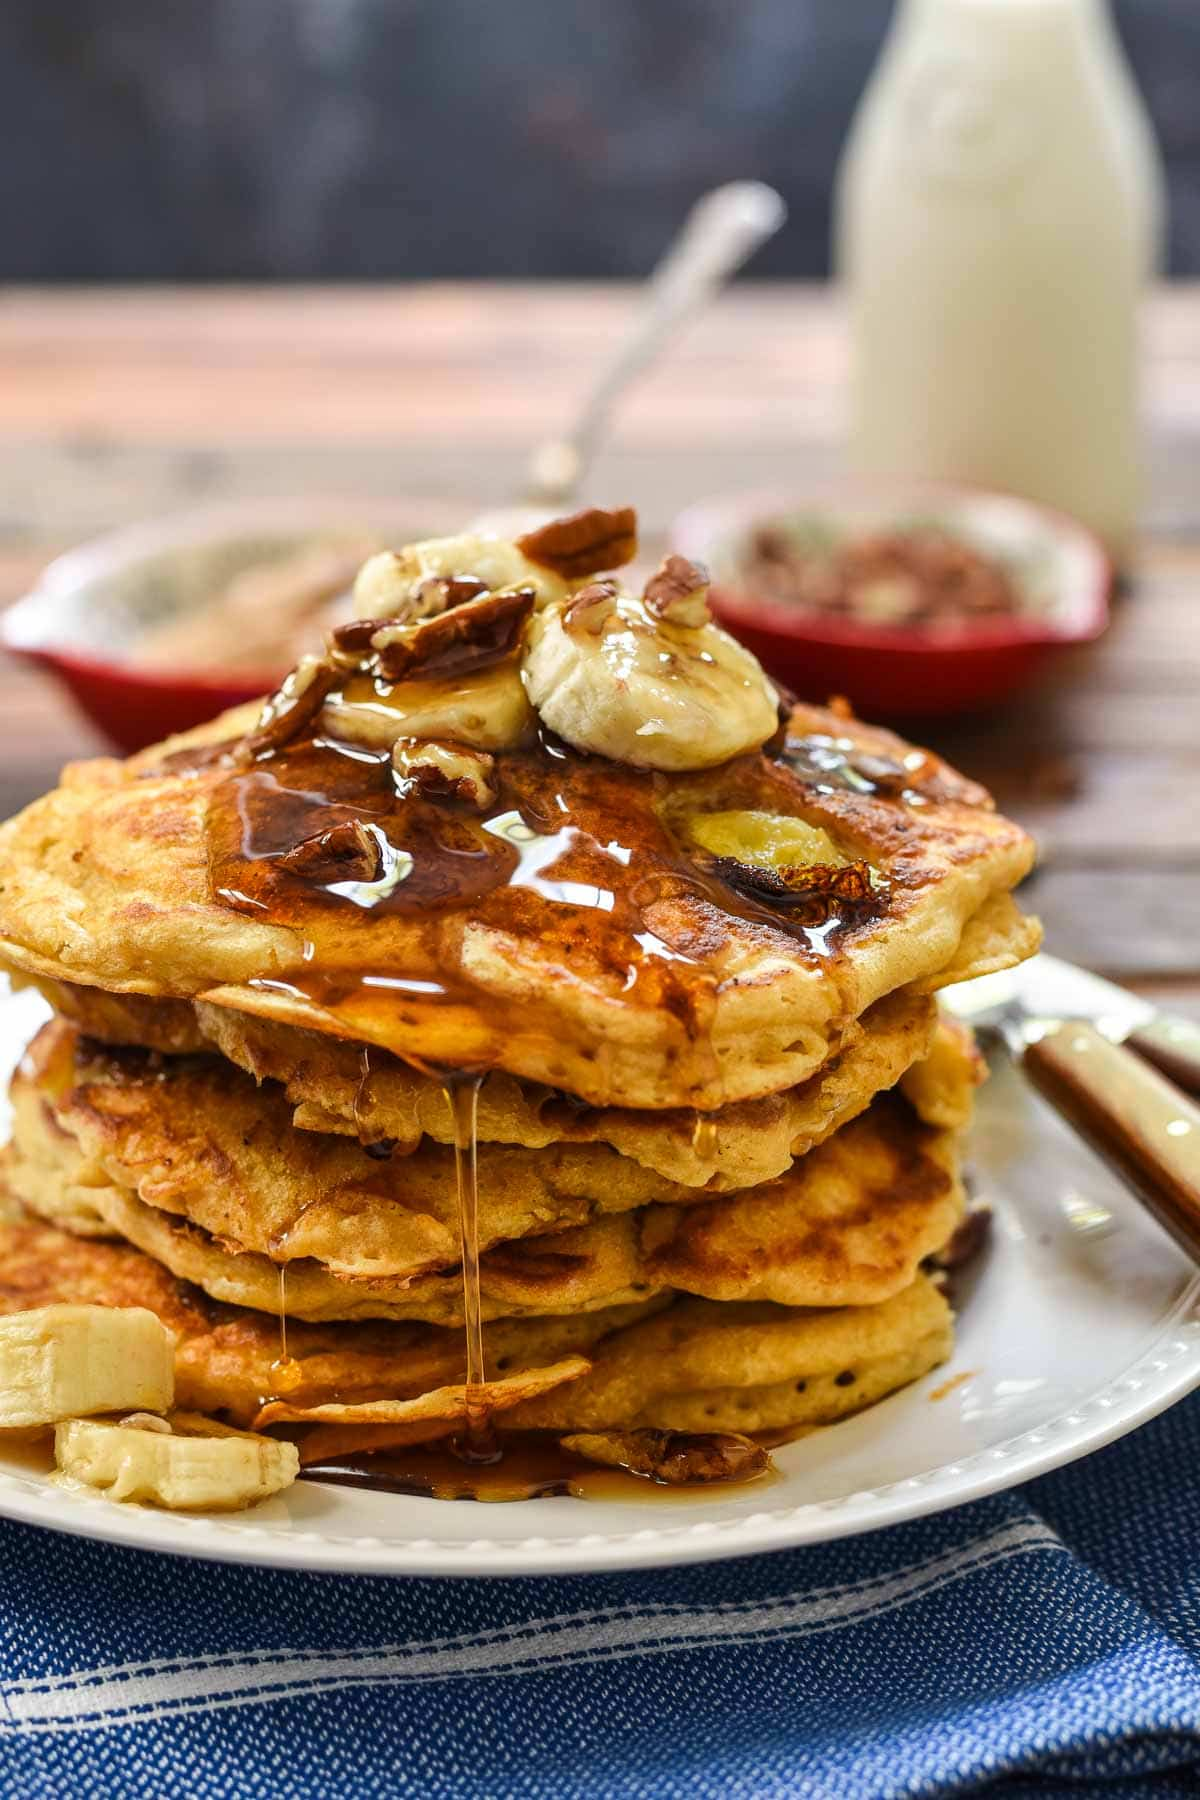 Banana Pancakes with Toasted Pecans